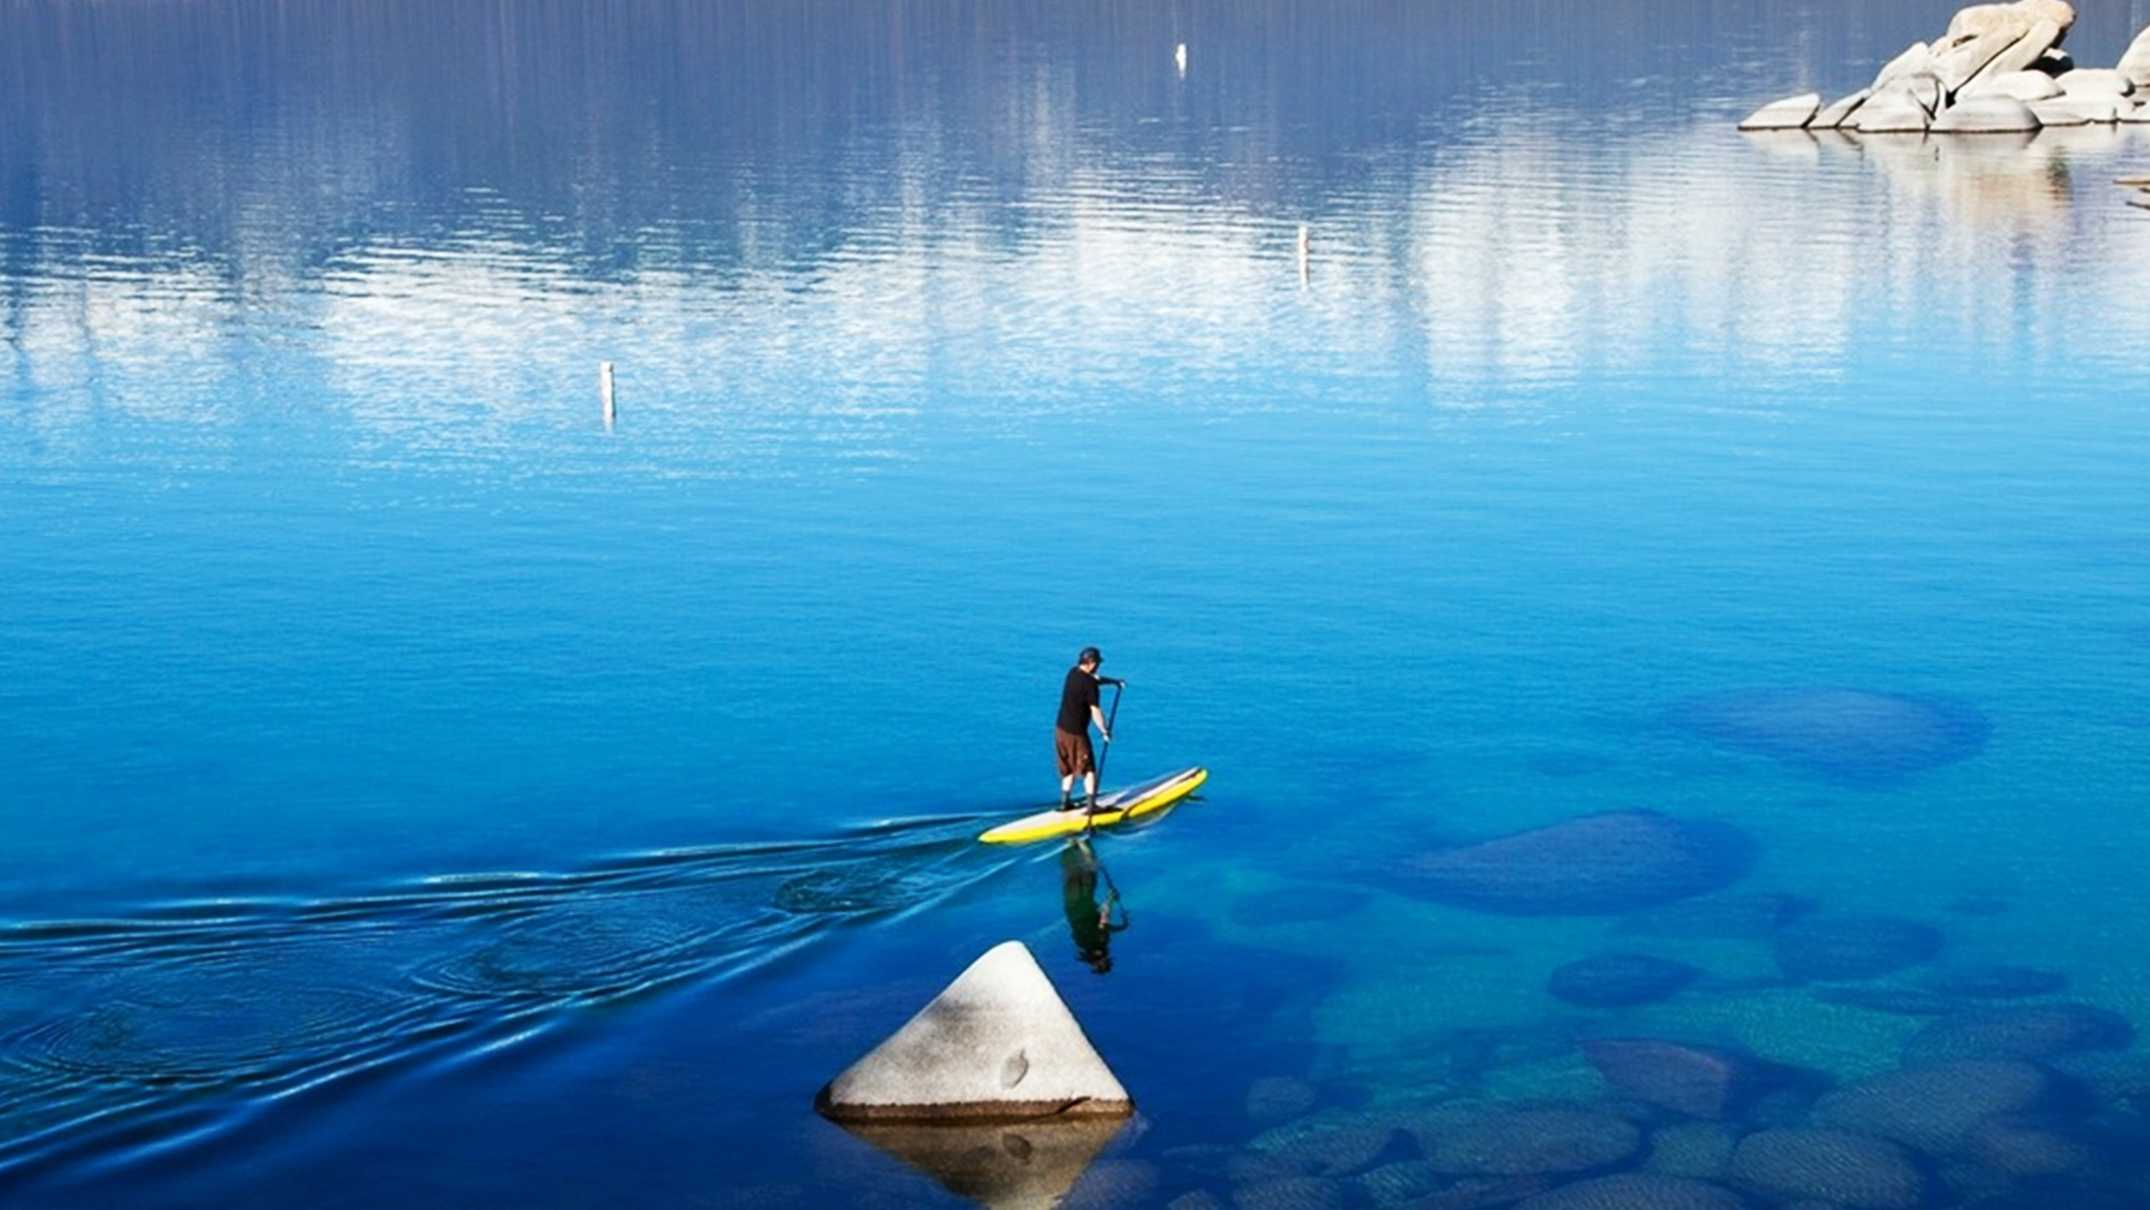 Paddle-boarding is a popular outdoor sport at Lake Tahoe.